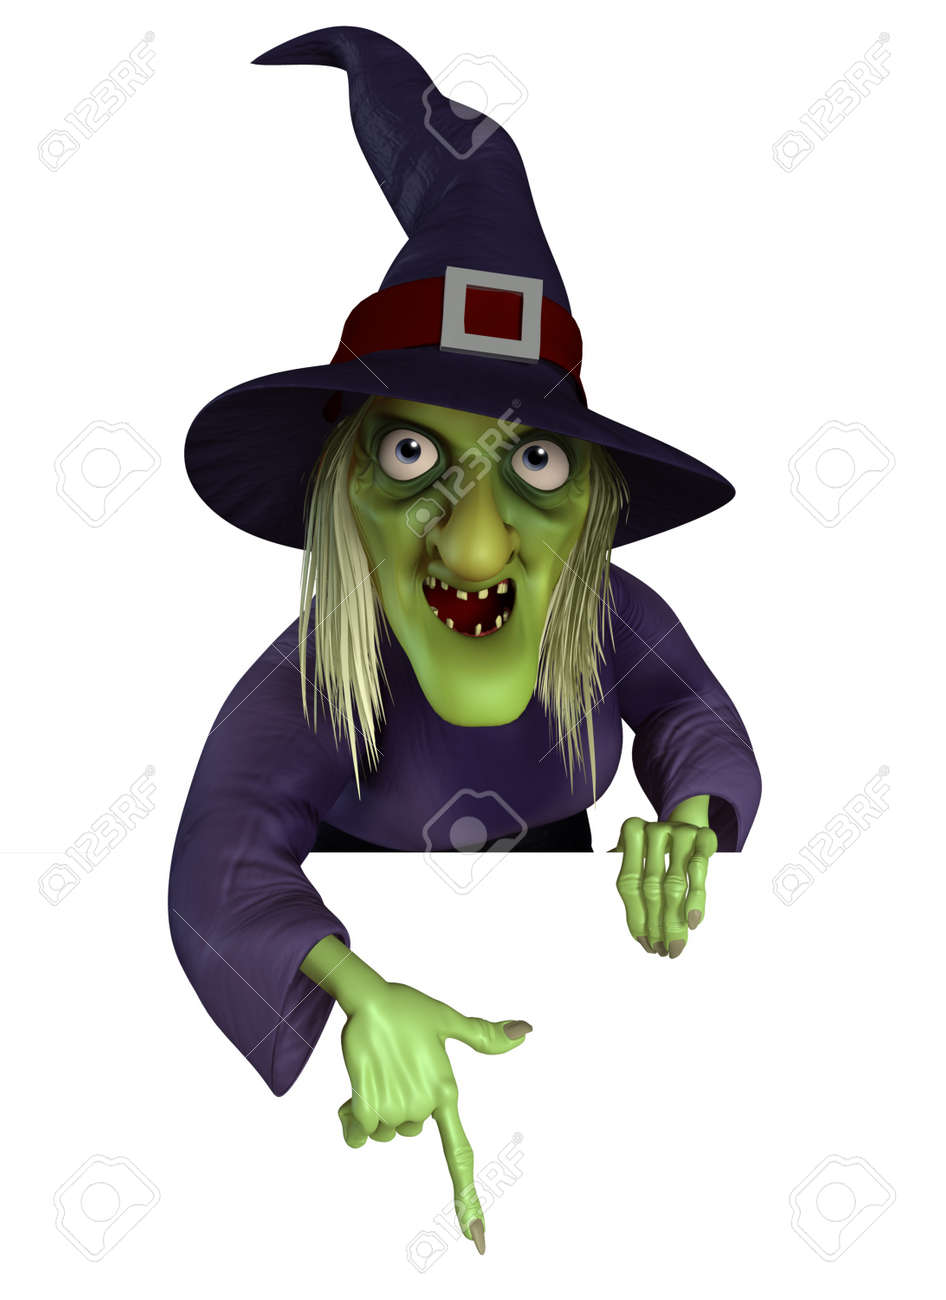 3d Cartoon Halloween Witch Stock Photo, Picture And Royalty Free ...